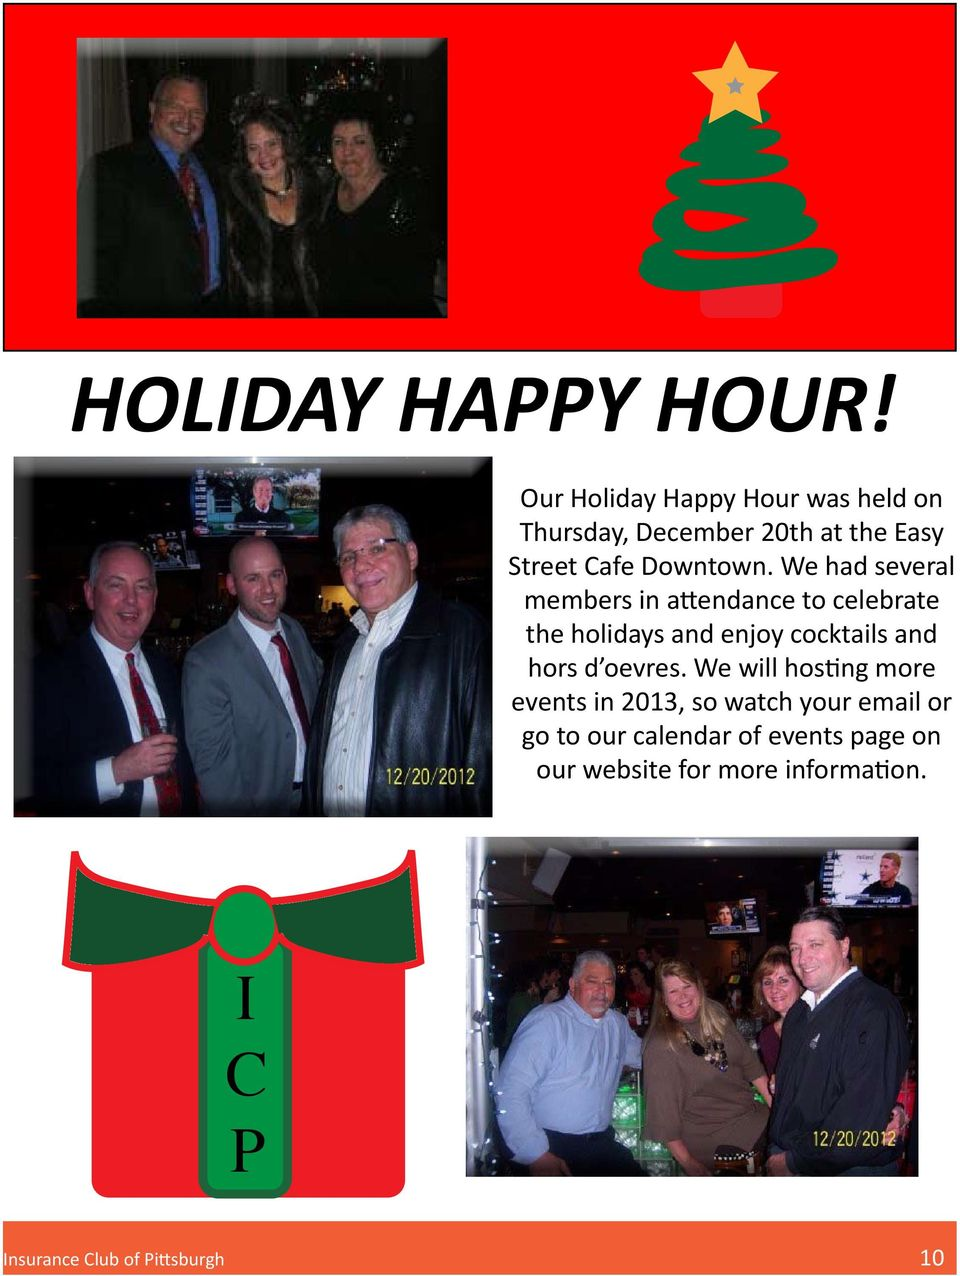 We had several members in attendance to celebrate the holidays and enjoy cocktails and hors d